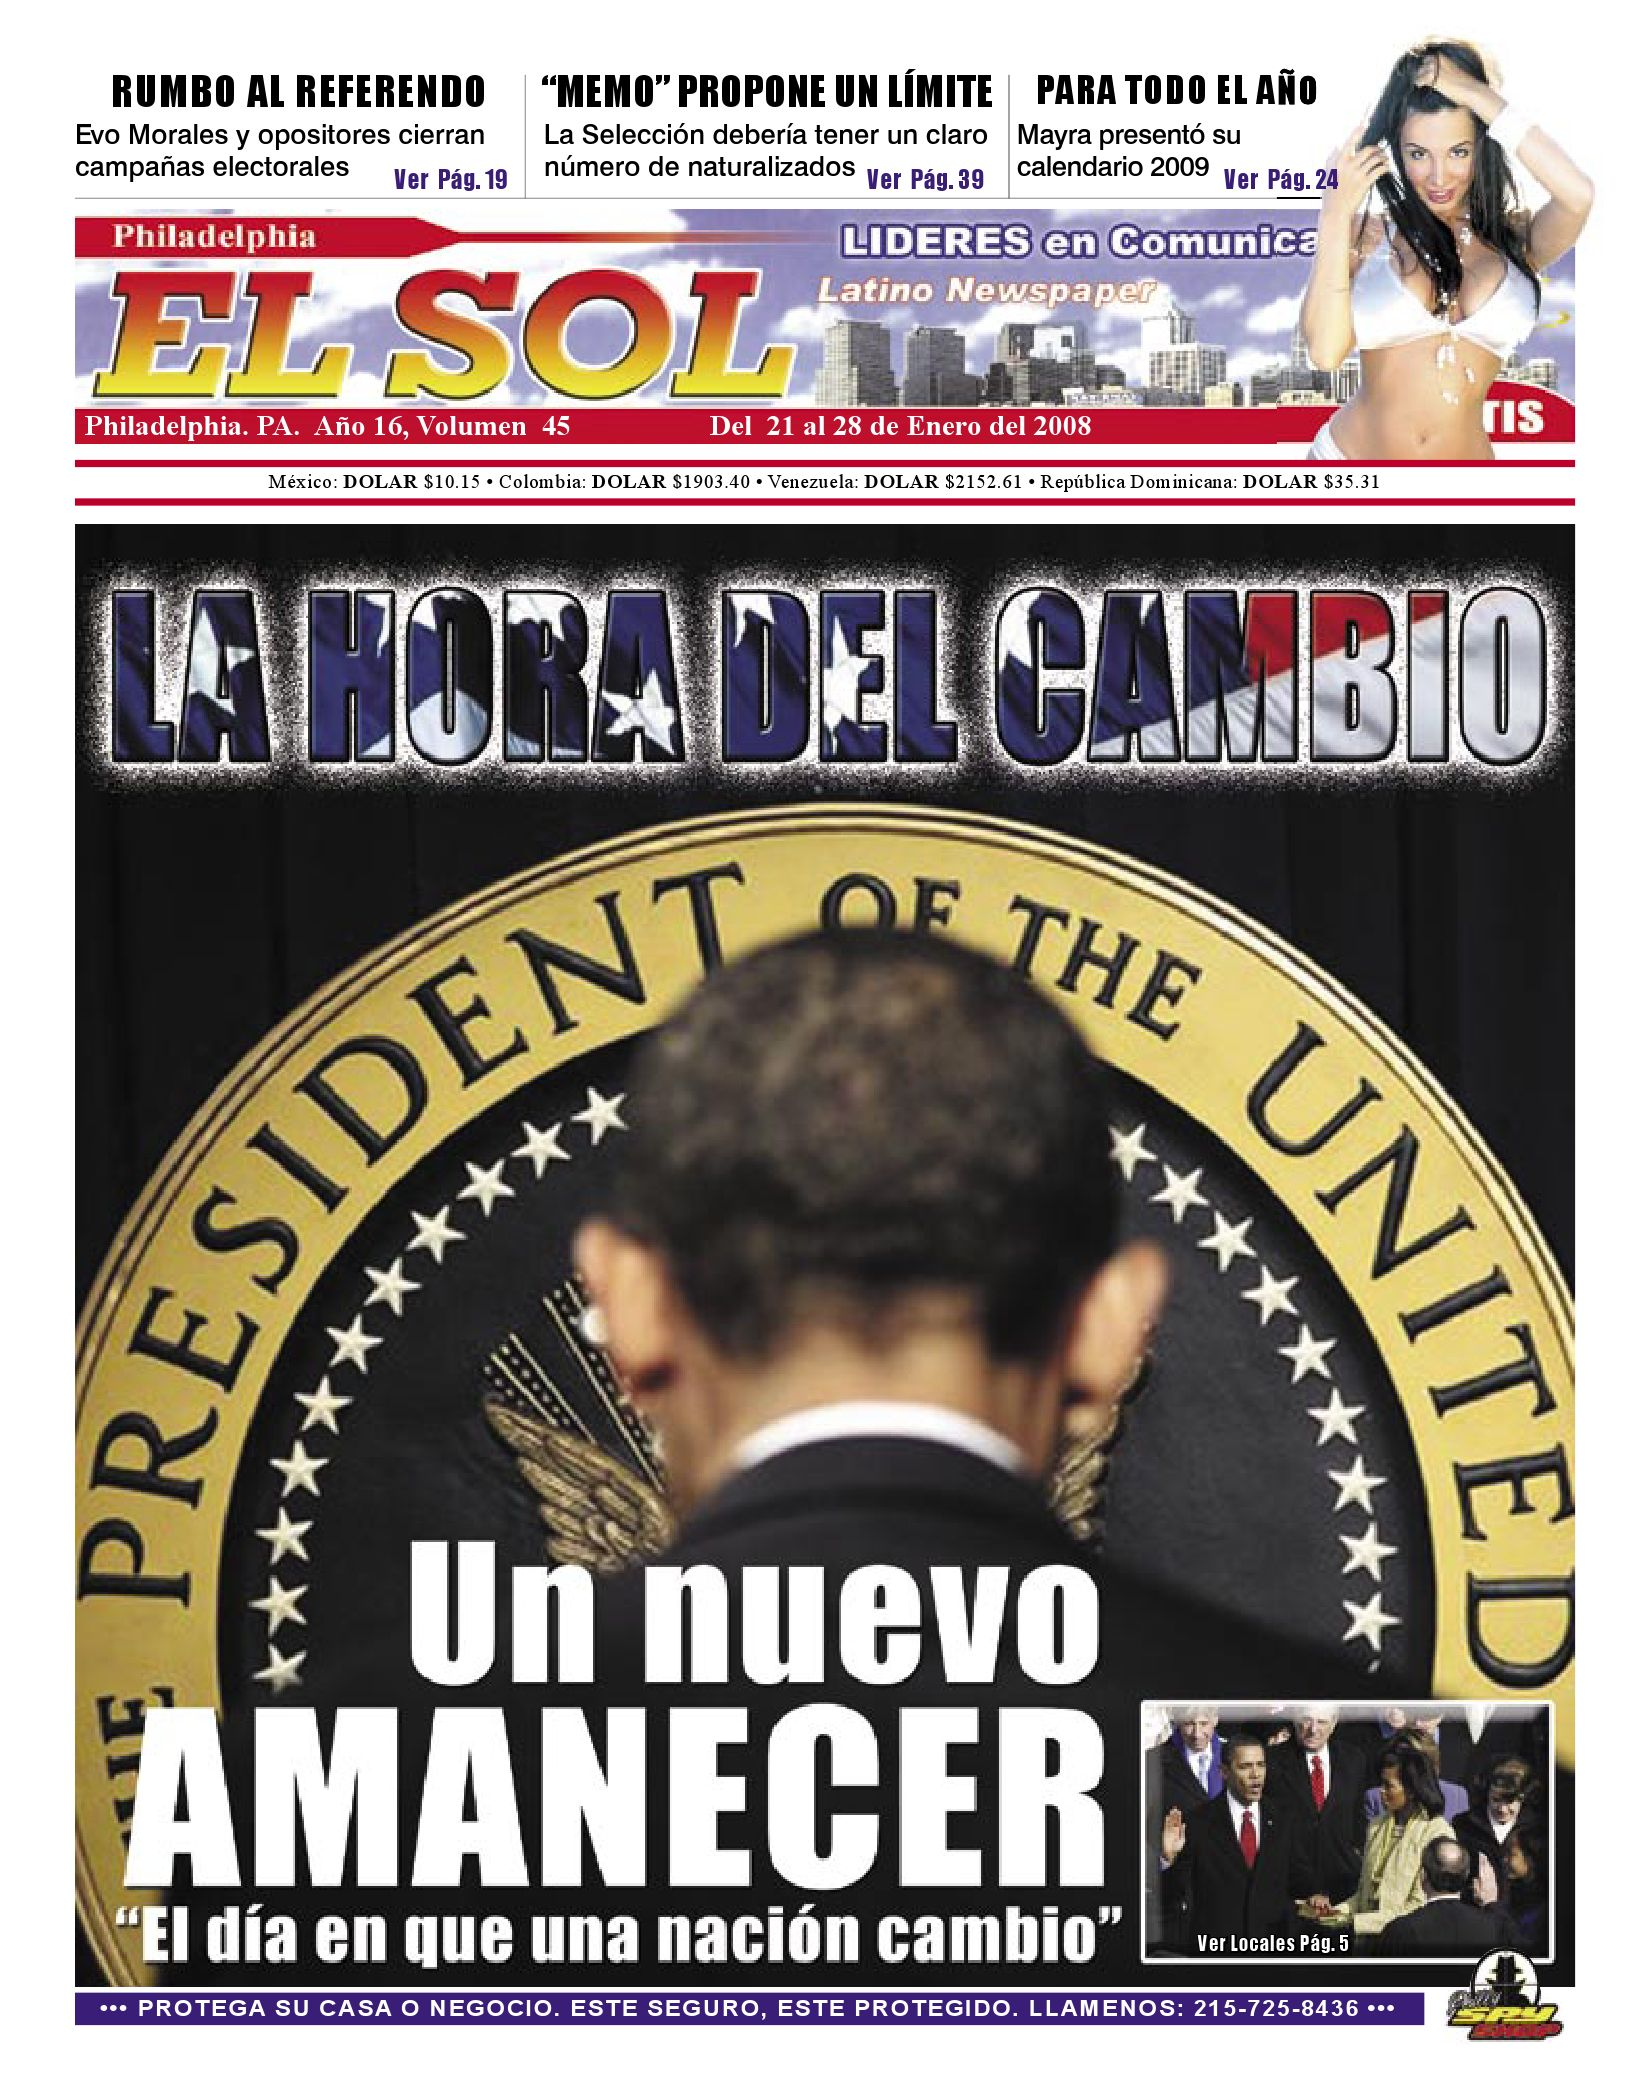 El Sol Philadelphia Vol16 No45 by El Sol Latino Newspaper - issuu